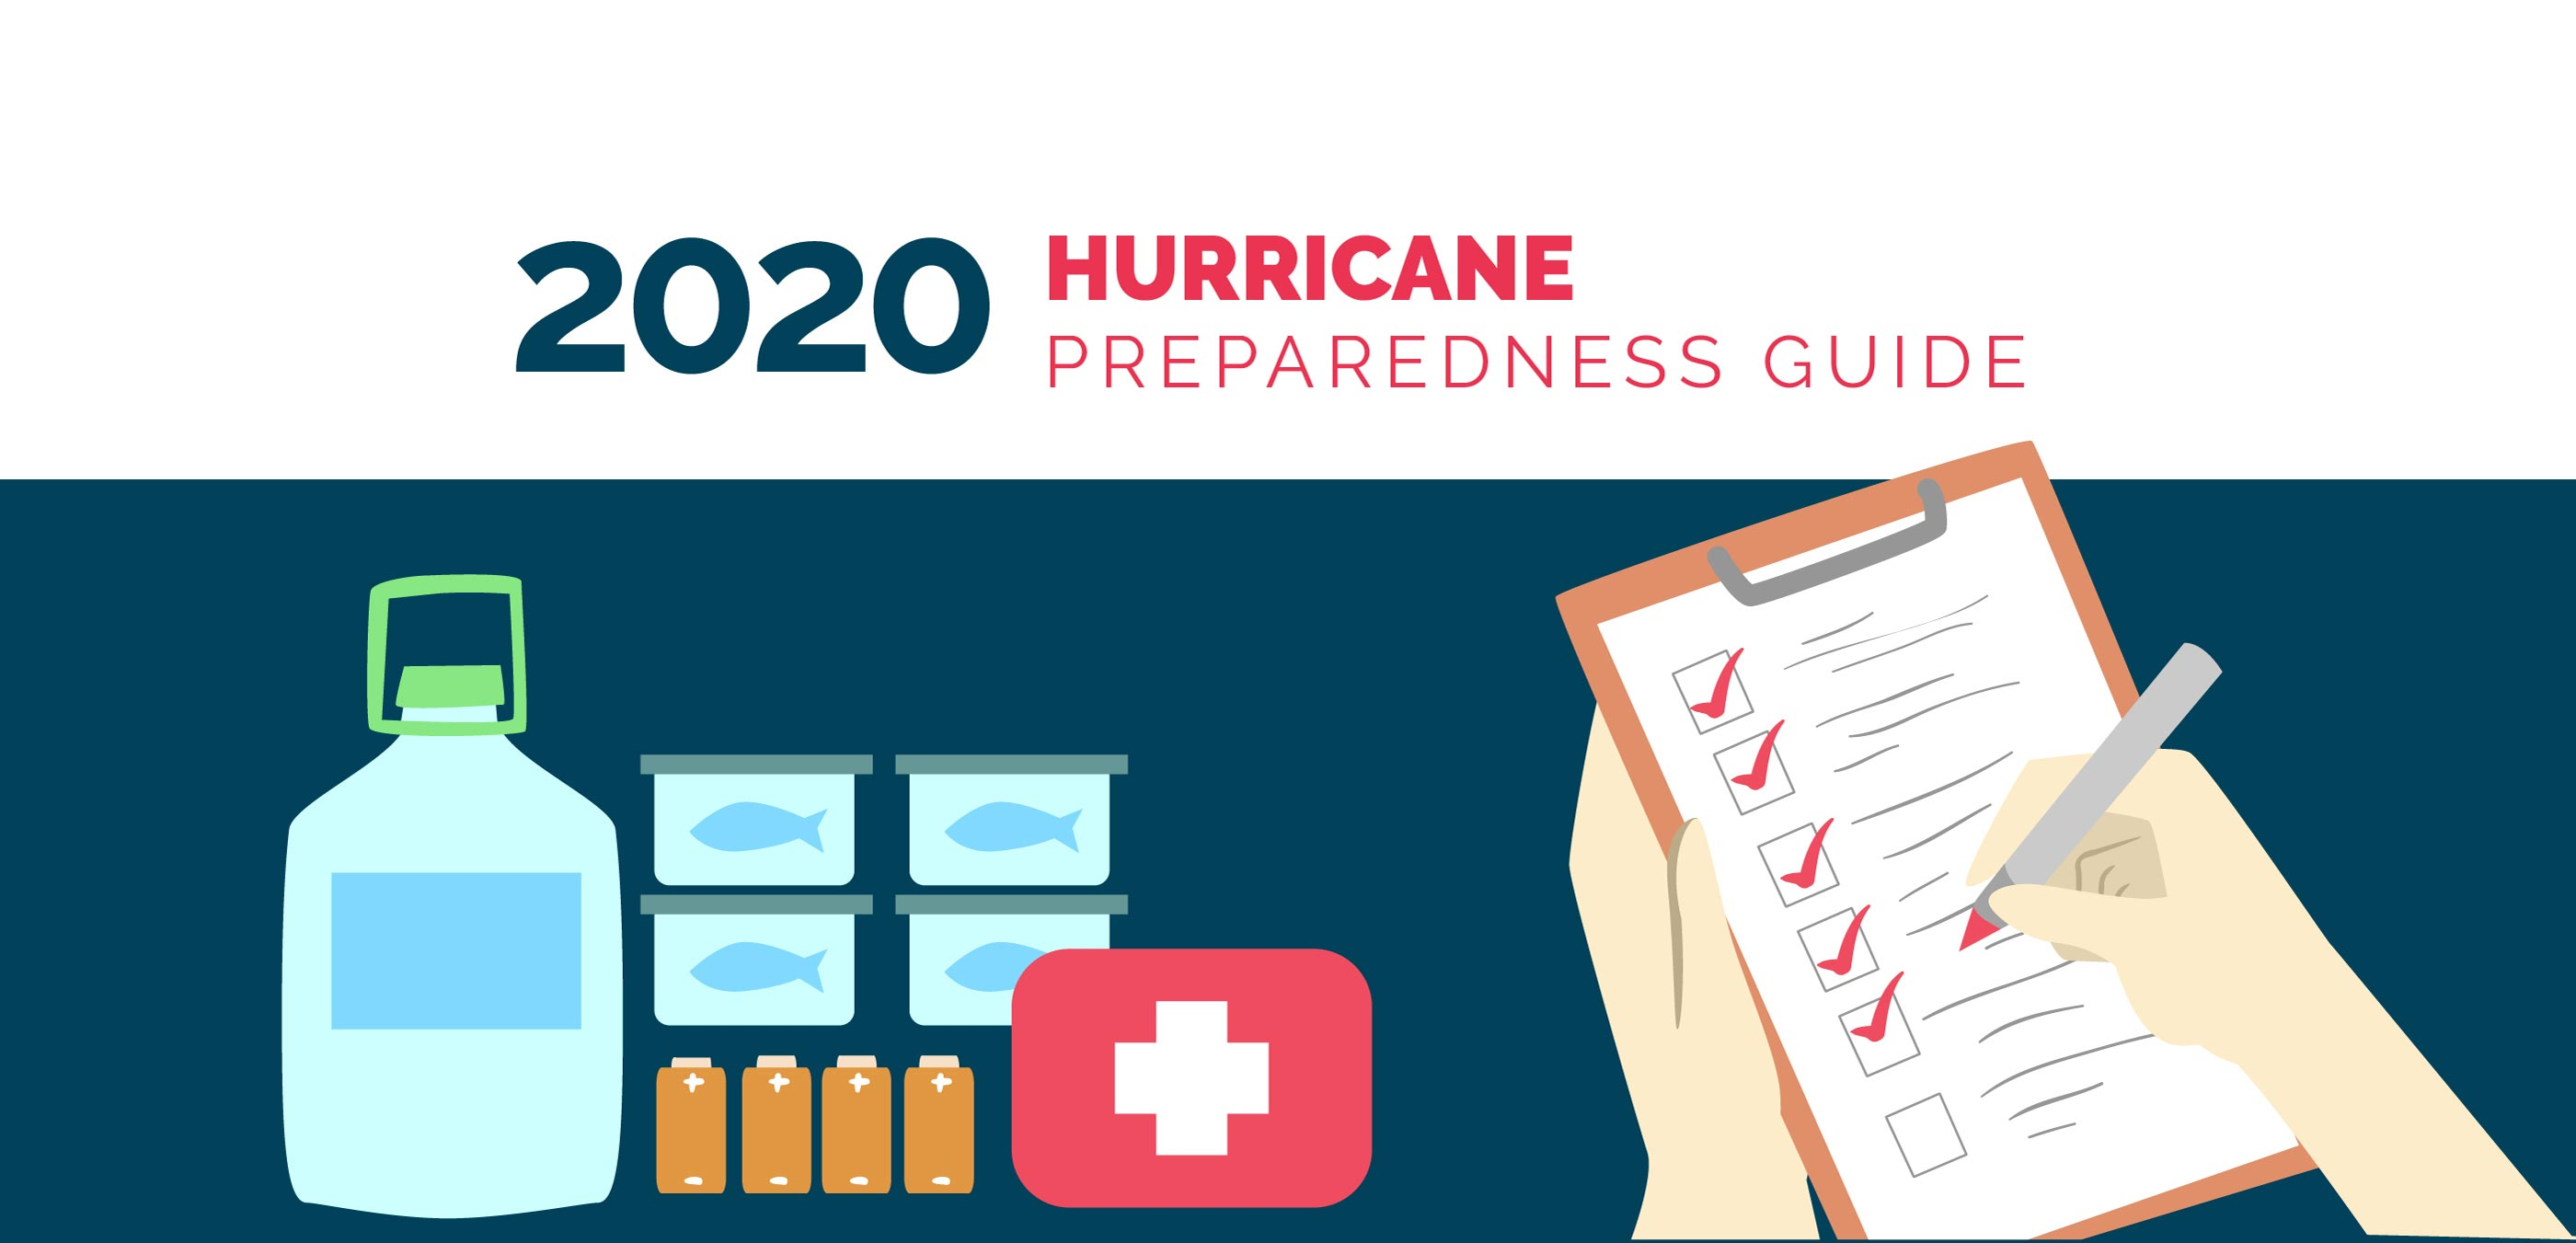 2020 Hurricane Preparedness Guide